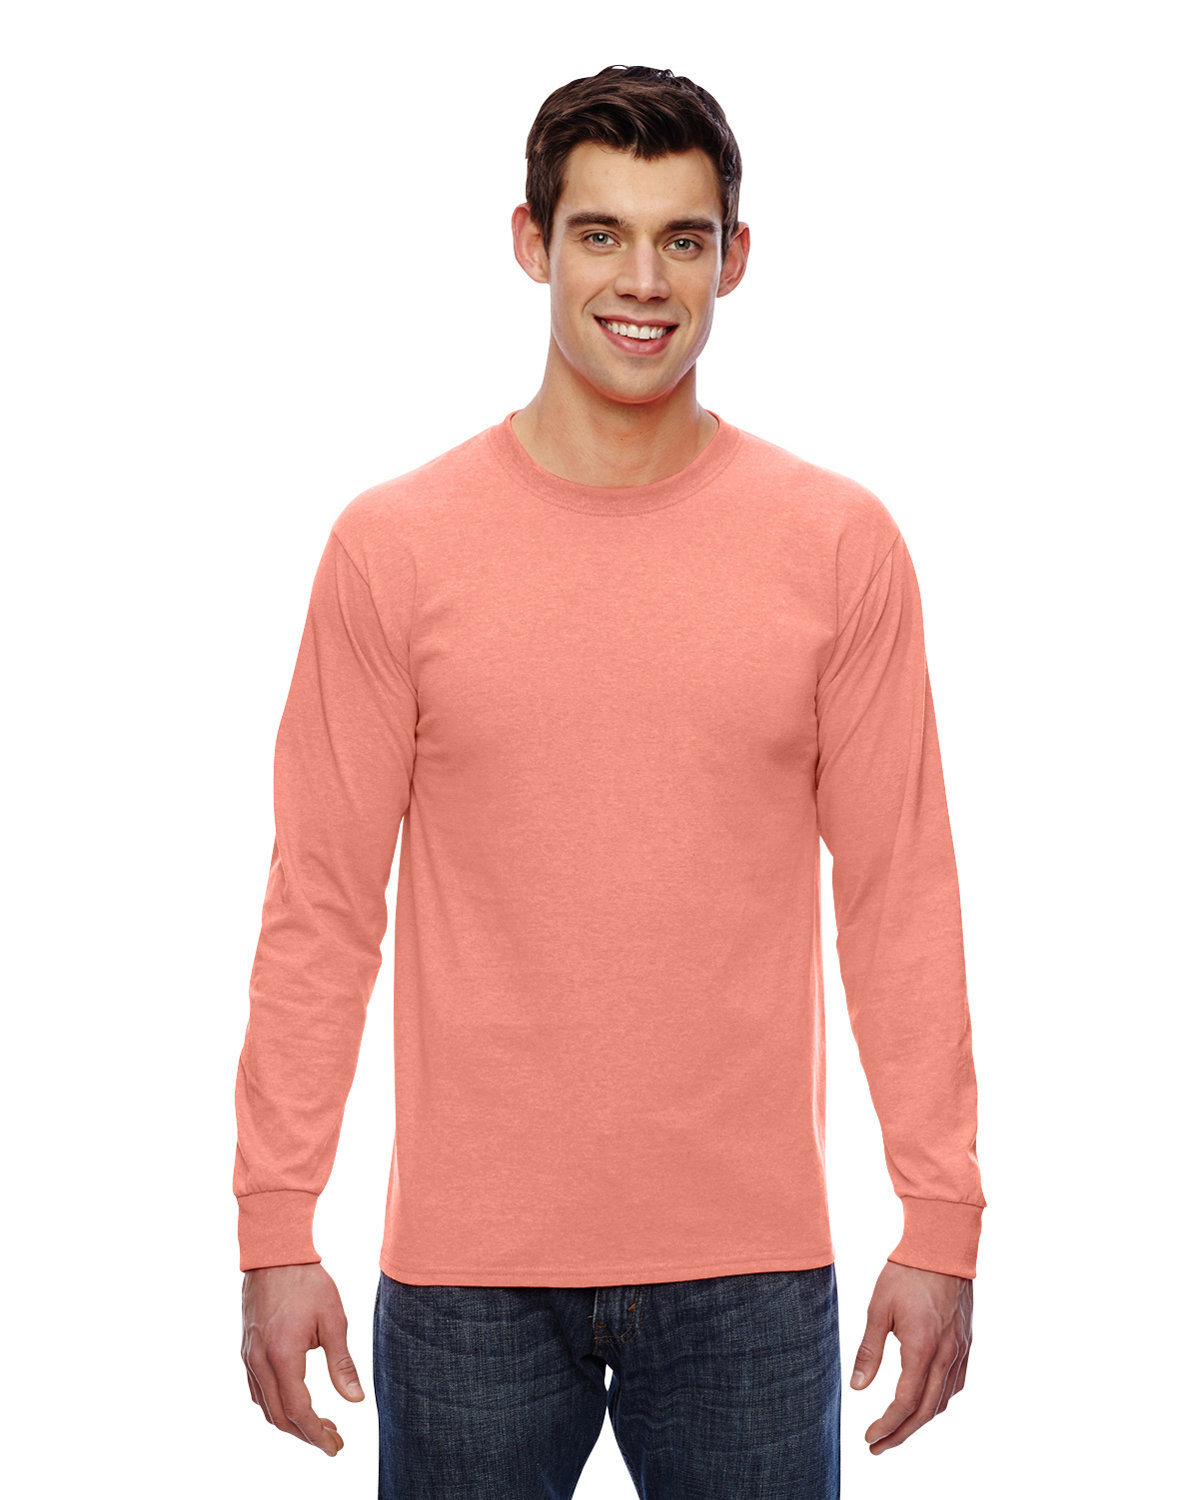 Fruit of the Loom Adult HD Cotton™ Long-Sleeve T-Shirt RETRO HTHR CORAL